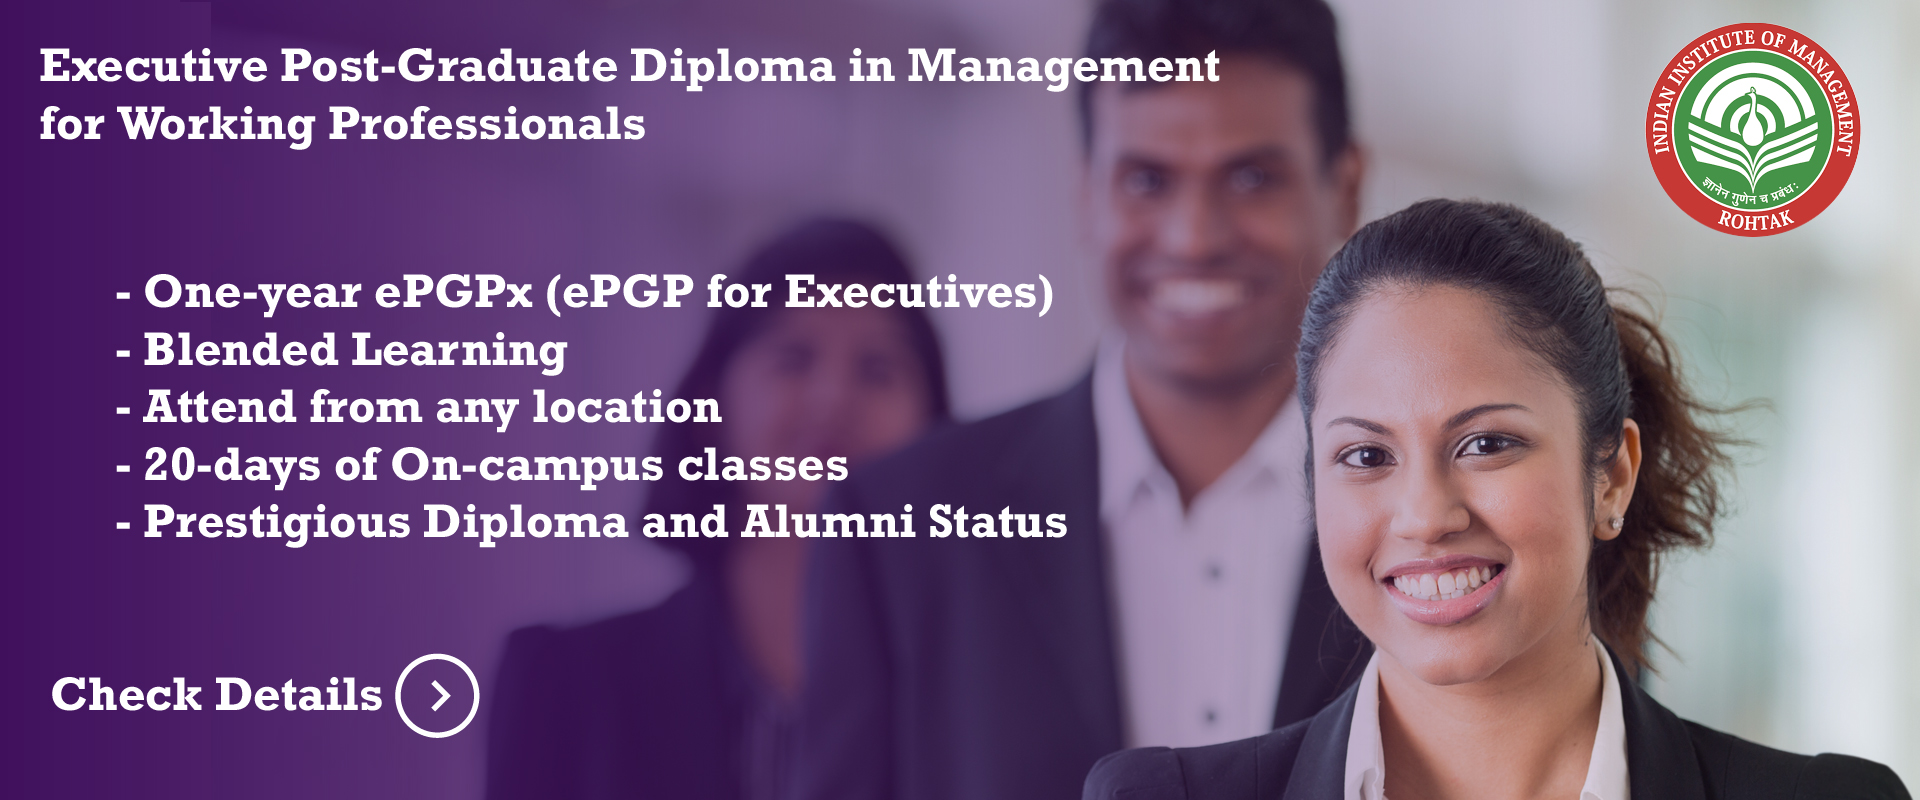 Indian Institute of Management (IIM), Rohtak Executive PG Diploma Programme in Management (ePGPx) Admission 2021-22